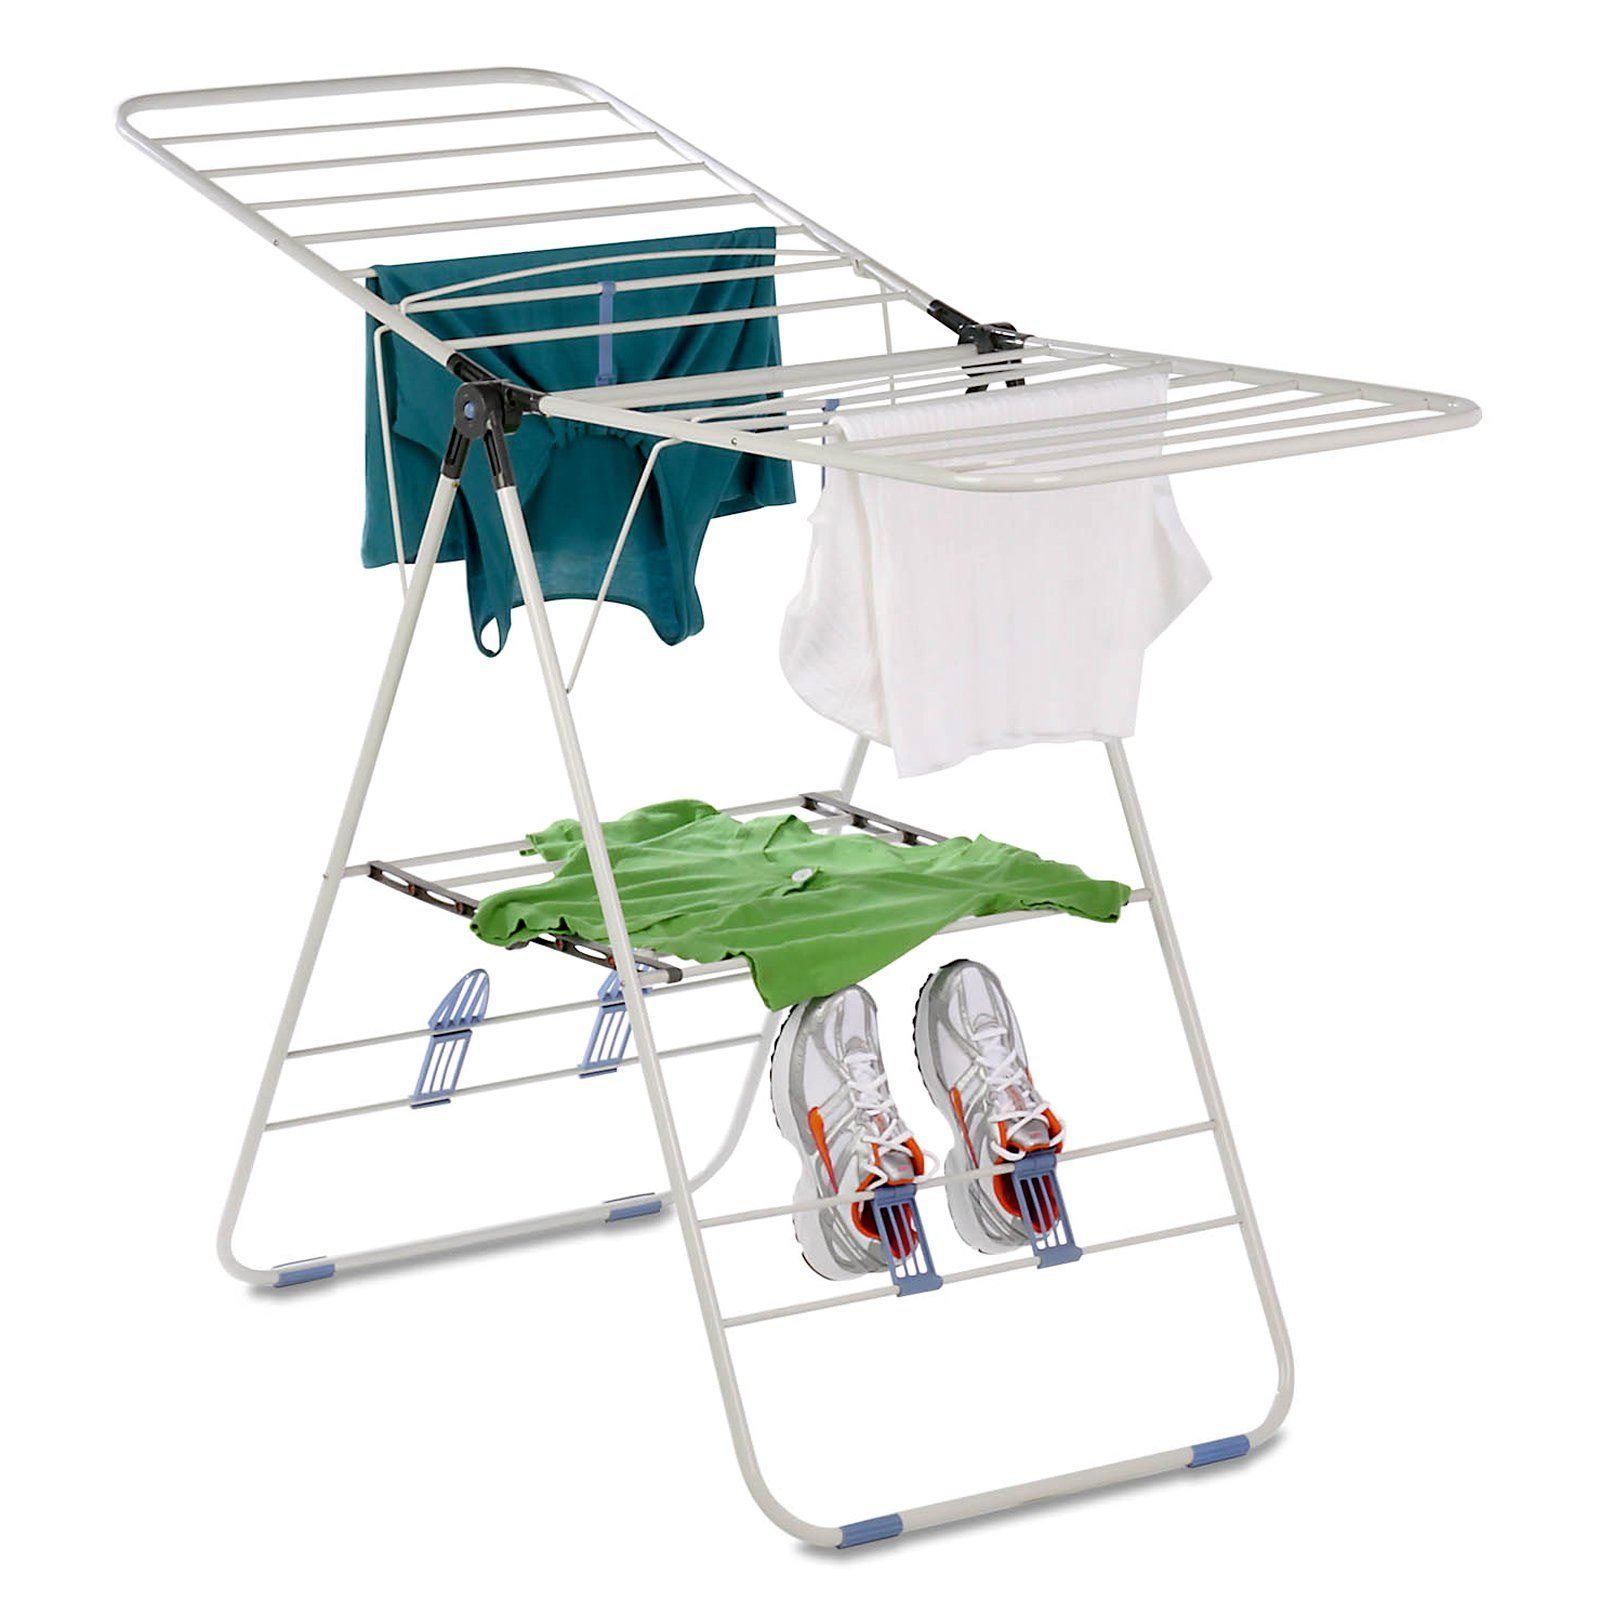 Clothes Drying Rack Target Have To Have Ithoney Can Do Dry01610 Gull Wing Steel Drying Rack